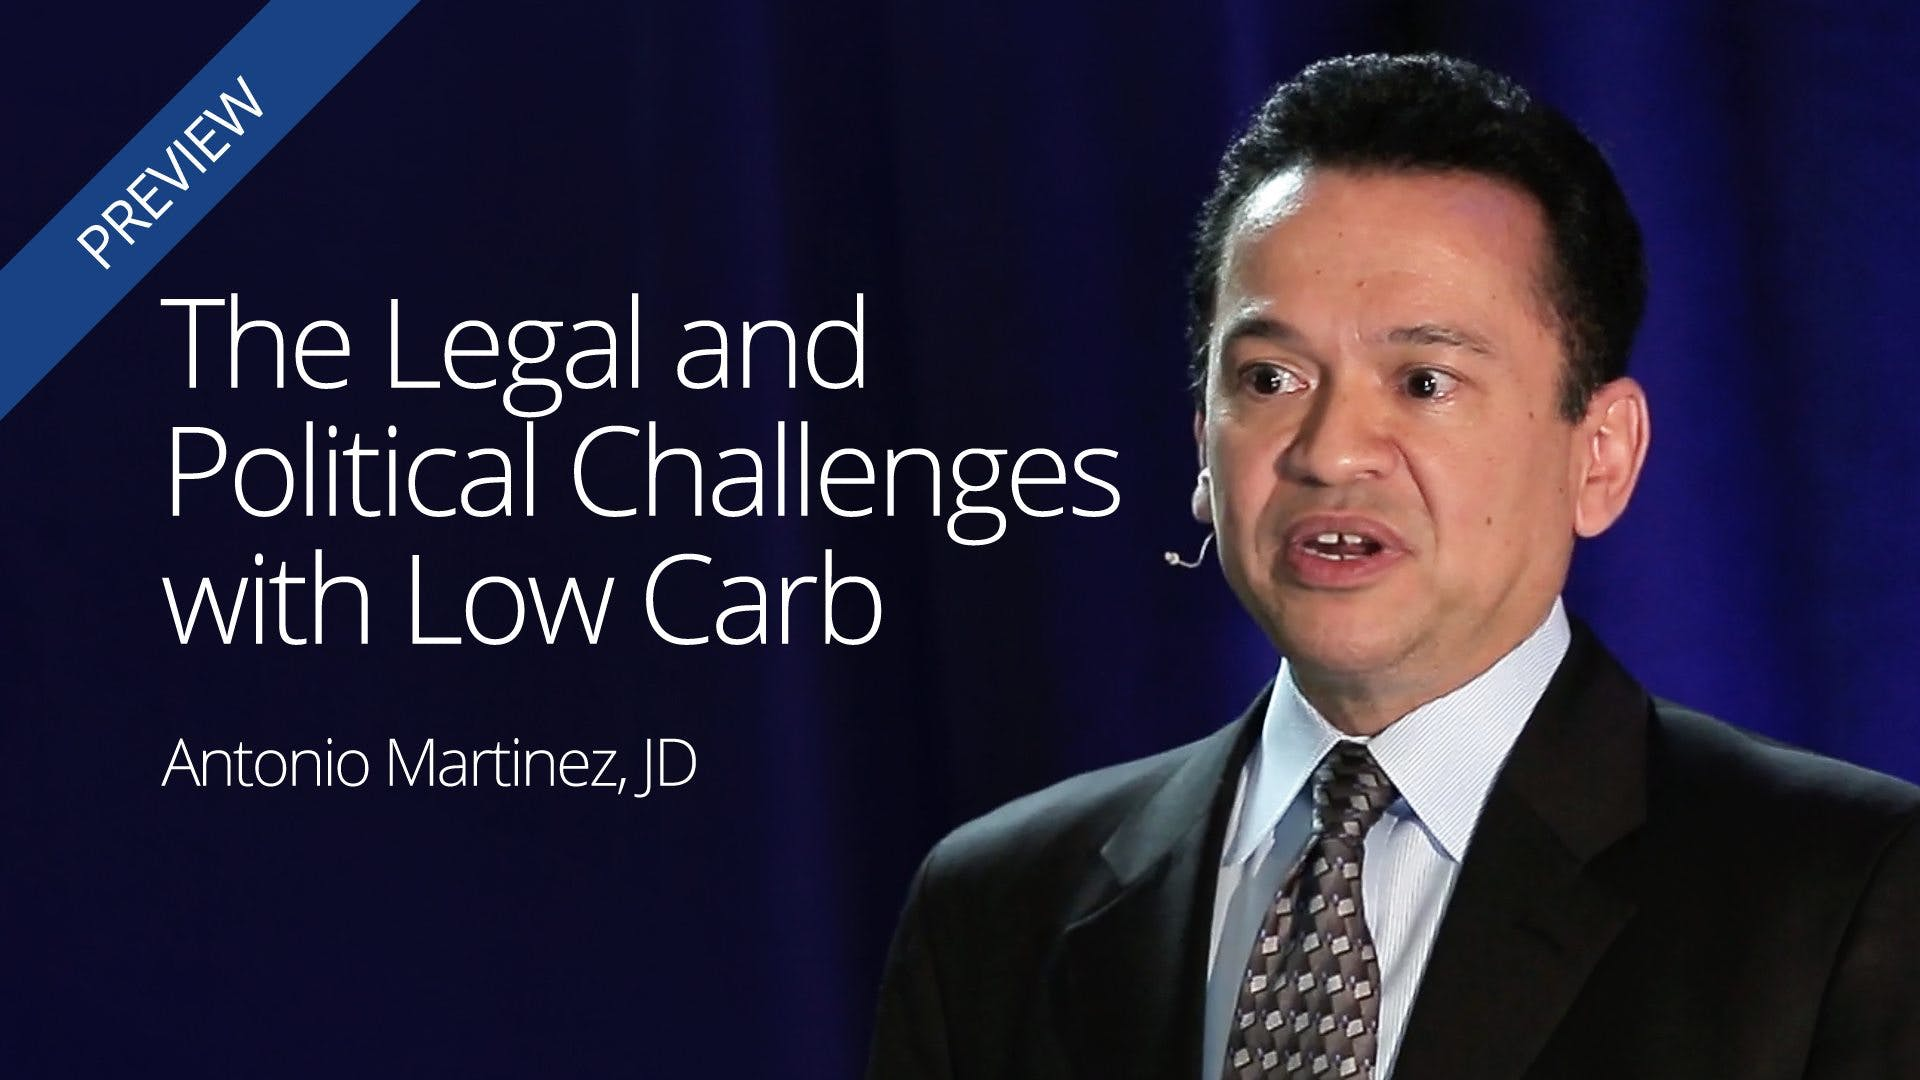 The Legal and Political Challenges with Low Carb